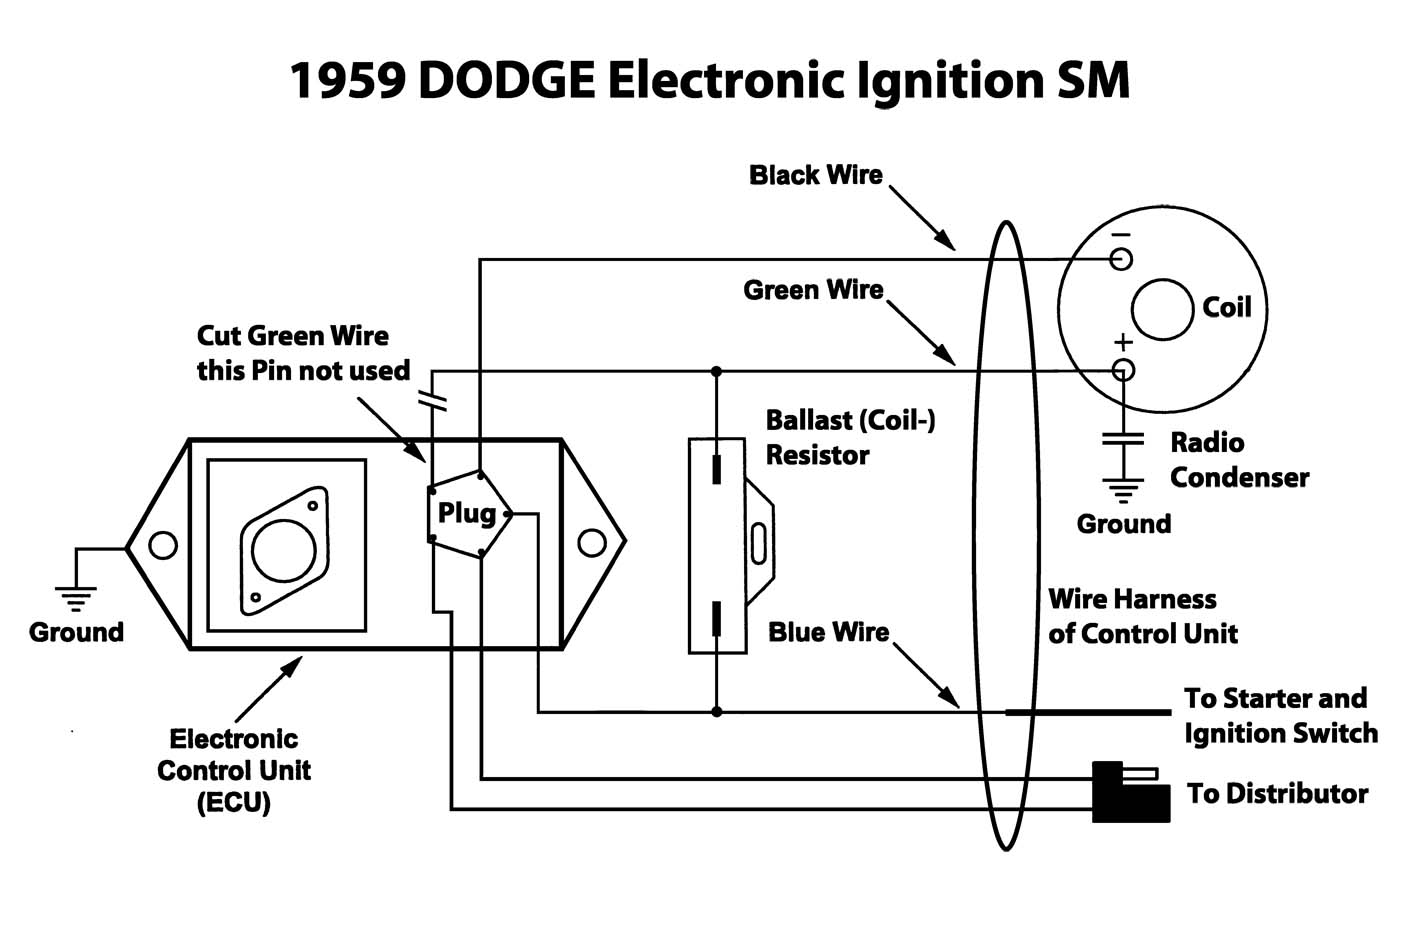 dodge 318 ignition wiring diagram 1988 viewing a thread - my electronic ignition conversion dodge ... 2002 dodge ram ignition wiring diagram #13